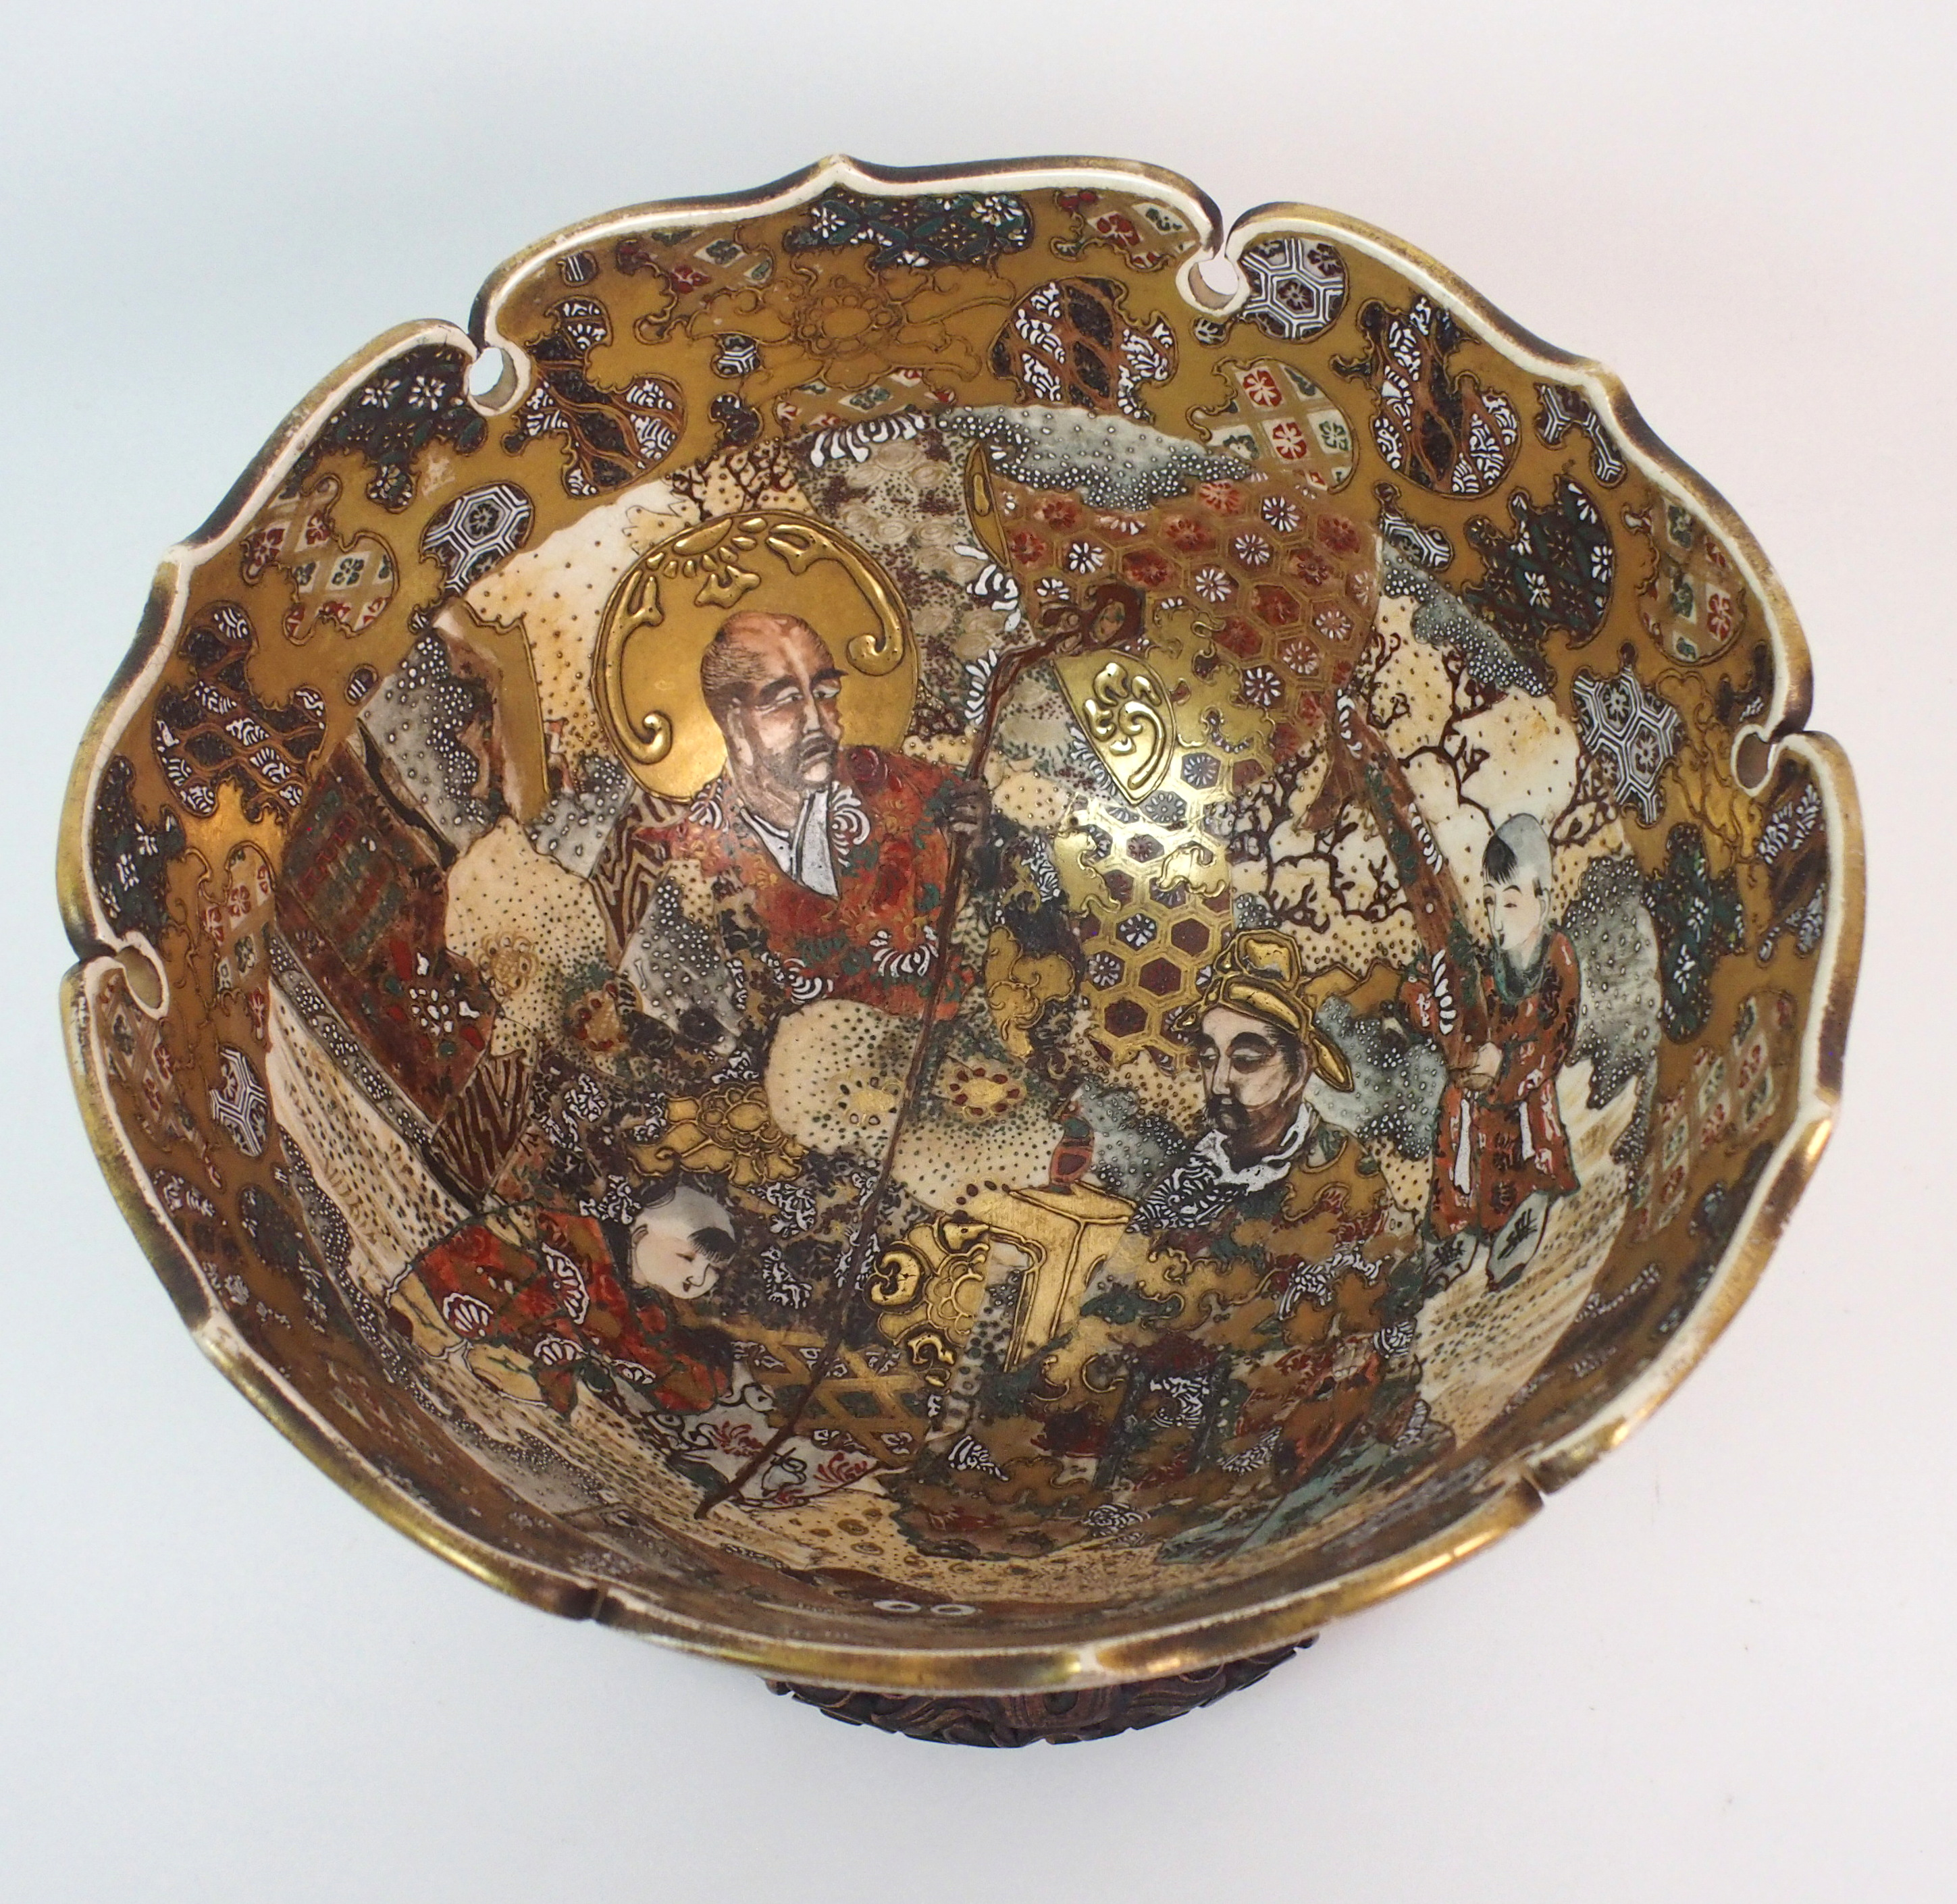 Lot 55 - A SATSUMA BOWL painted with figures in a garden within gilt brocade border and pierced foliate